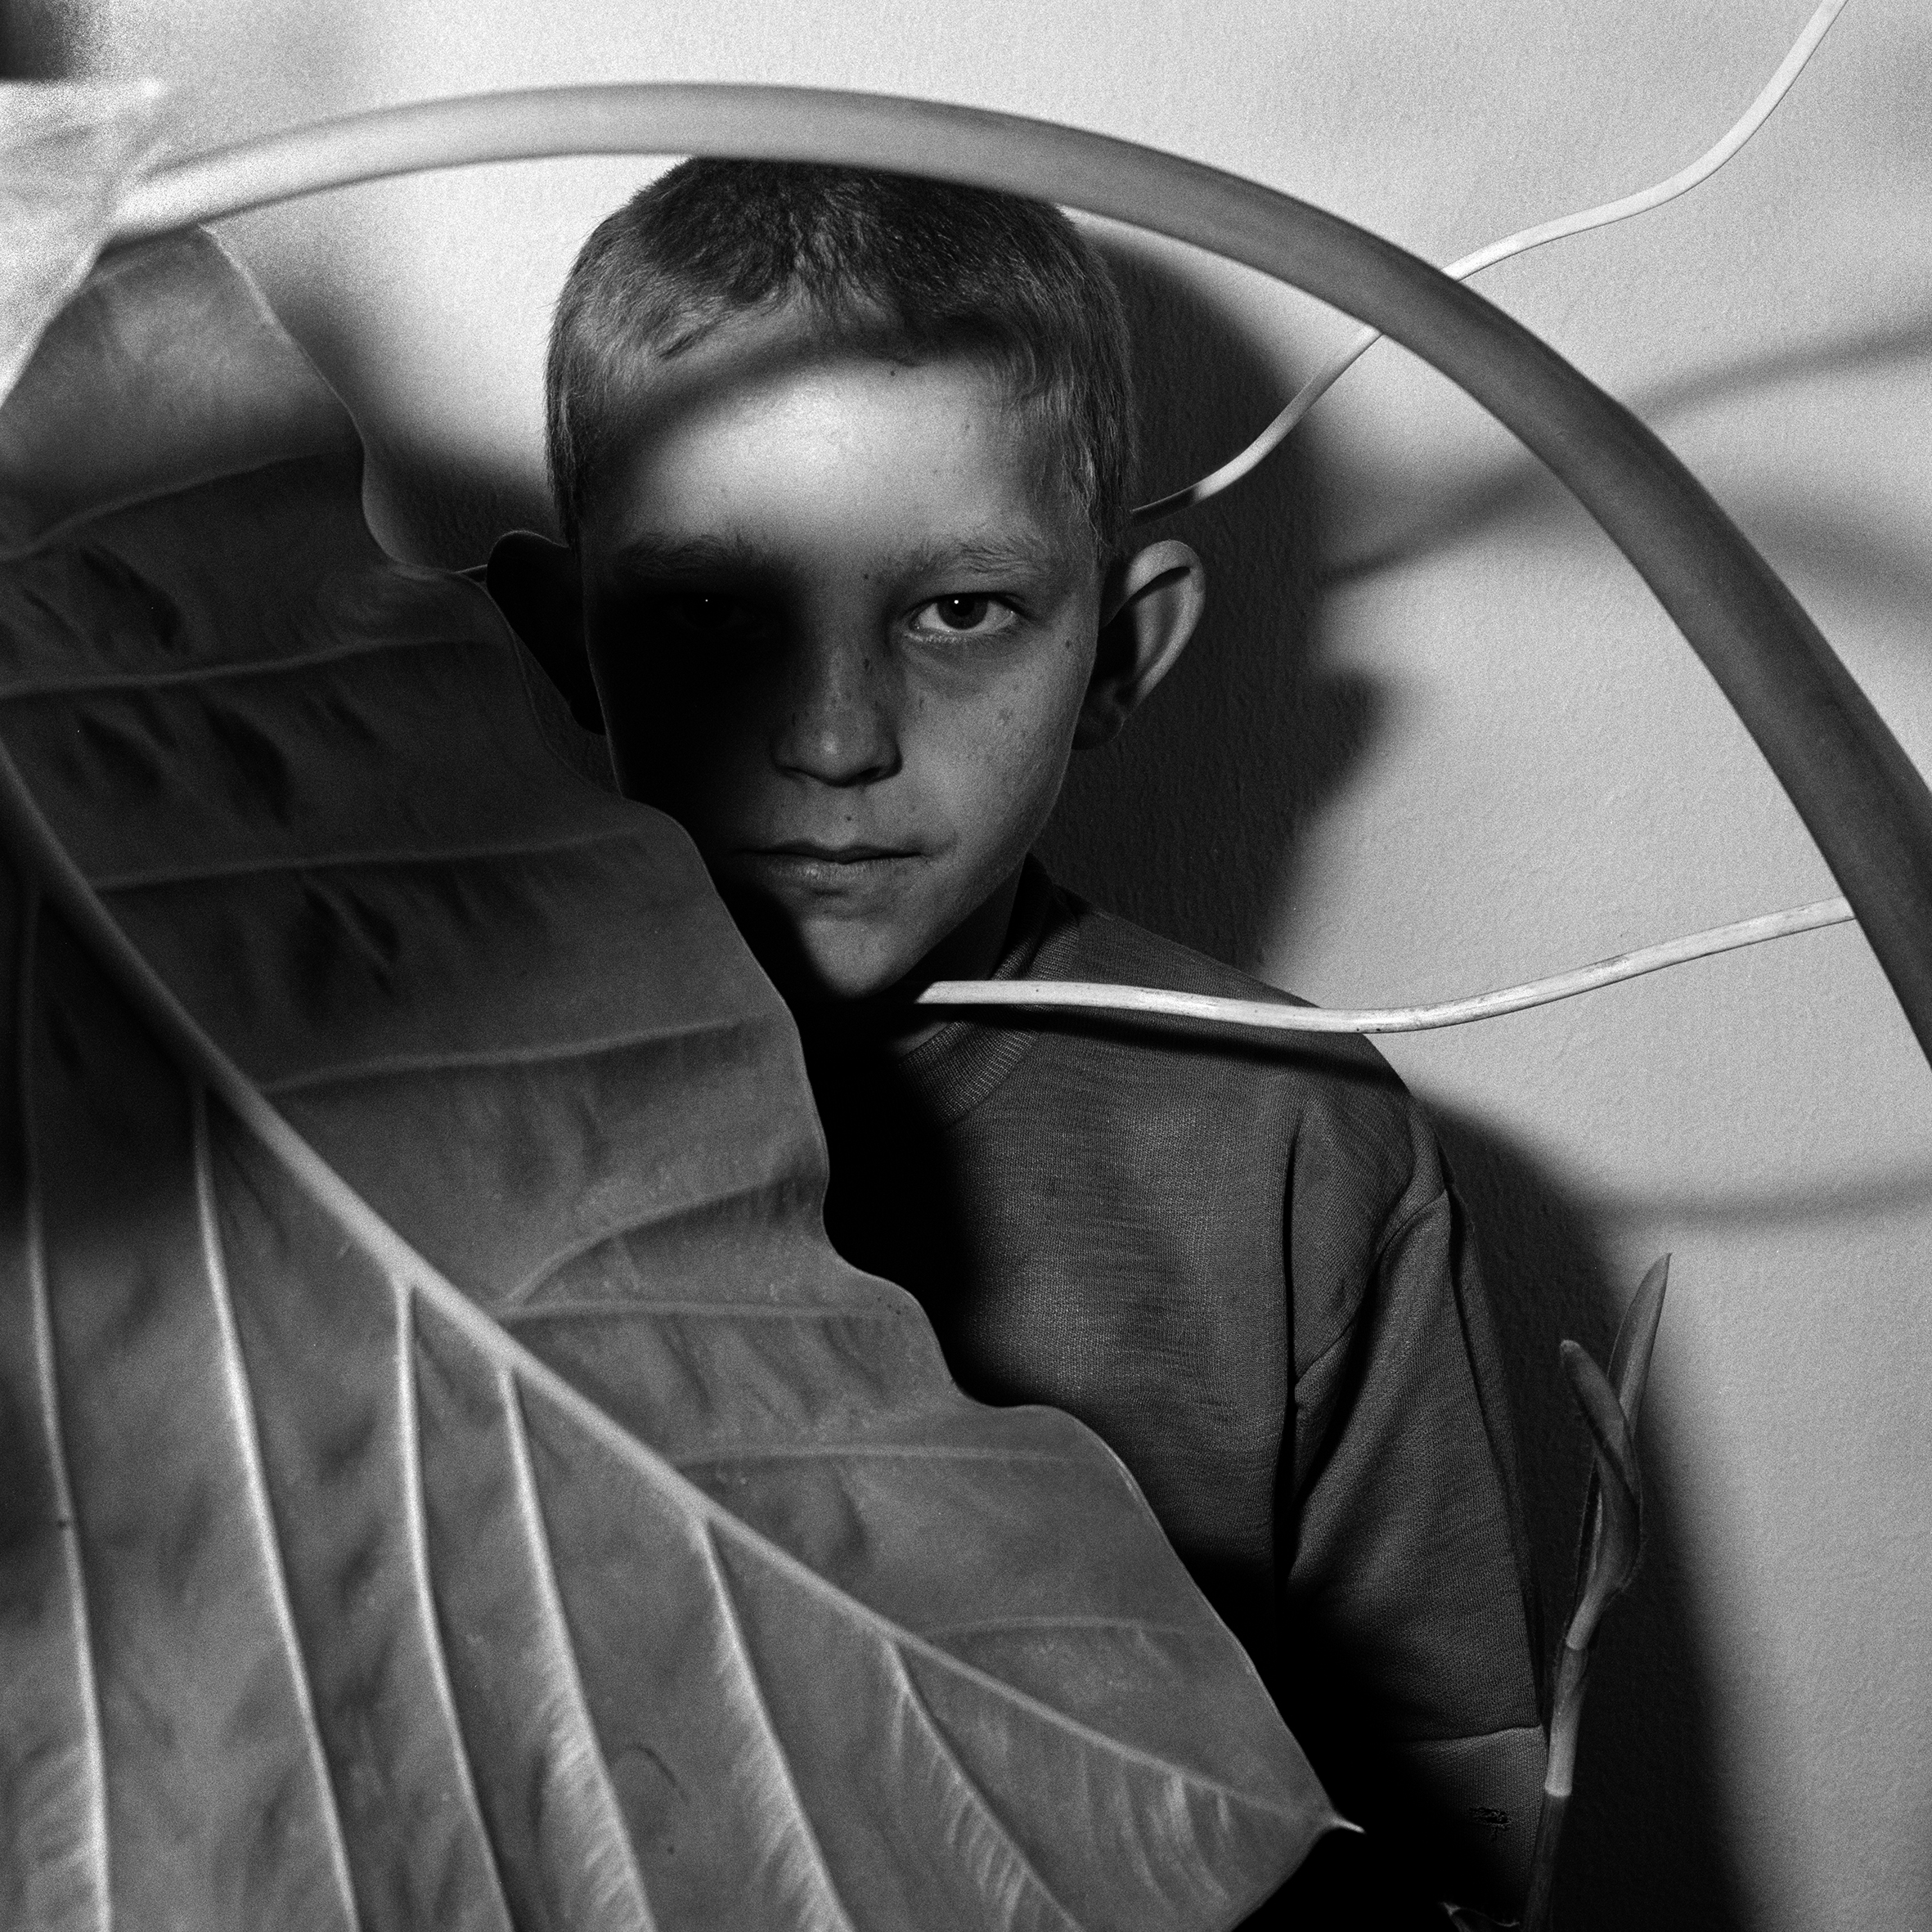 Study of Boy and Plant  - 1999Size/edition info t.b.c.